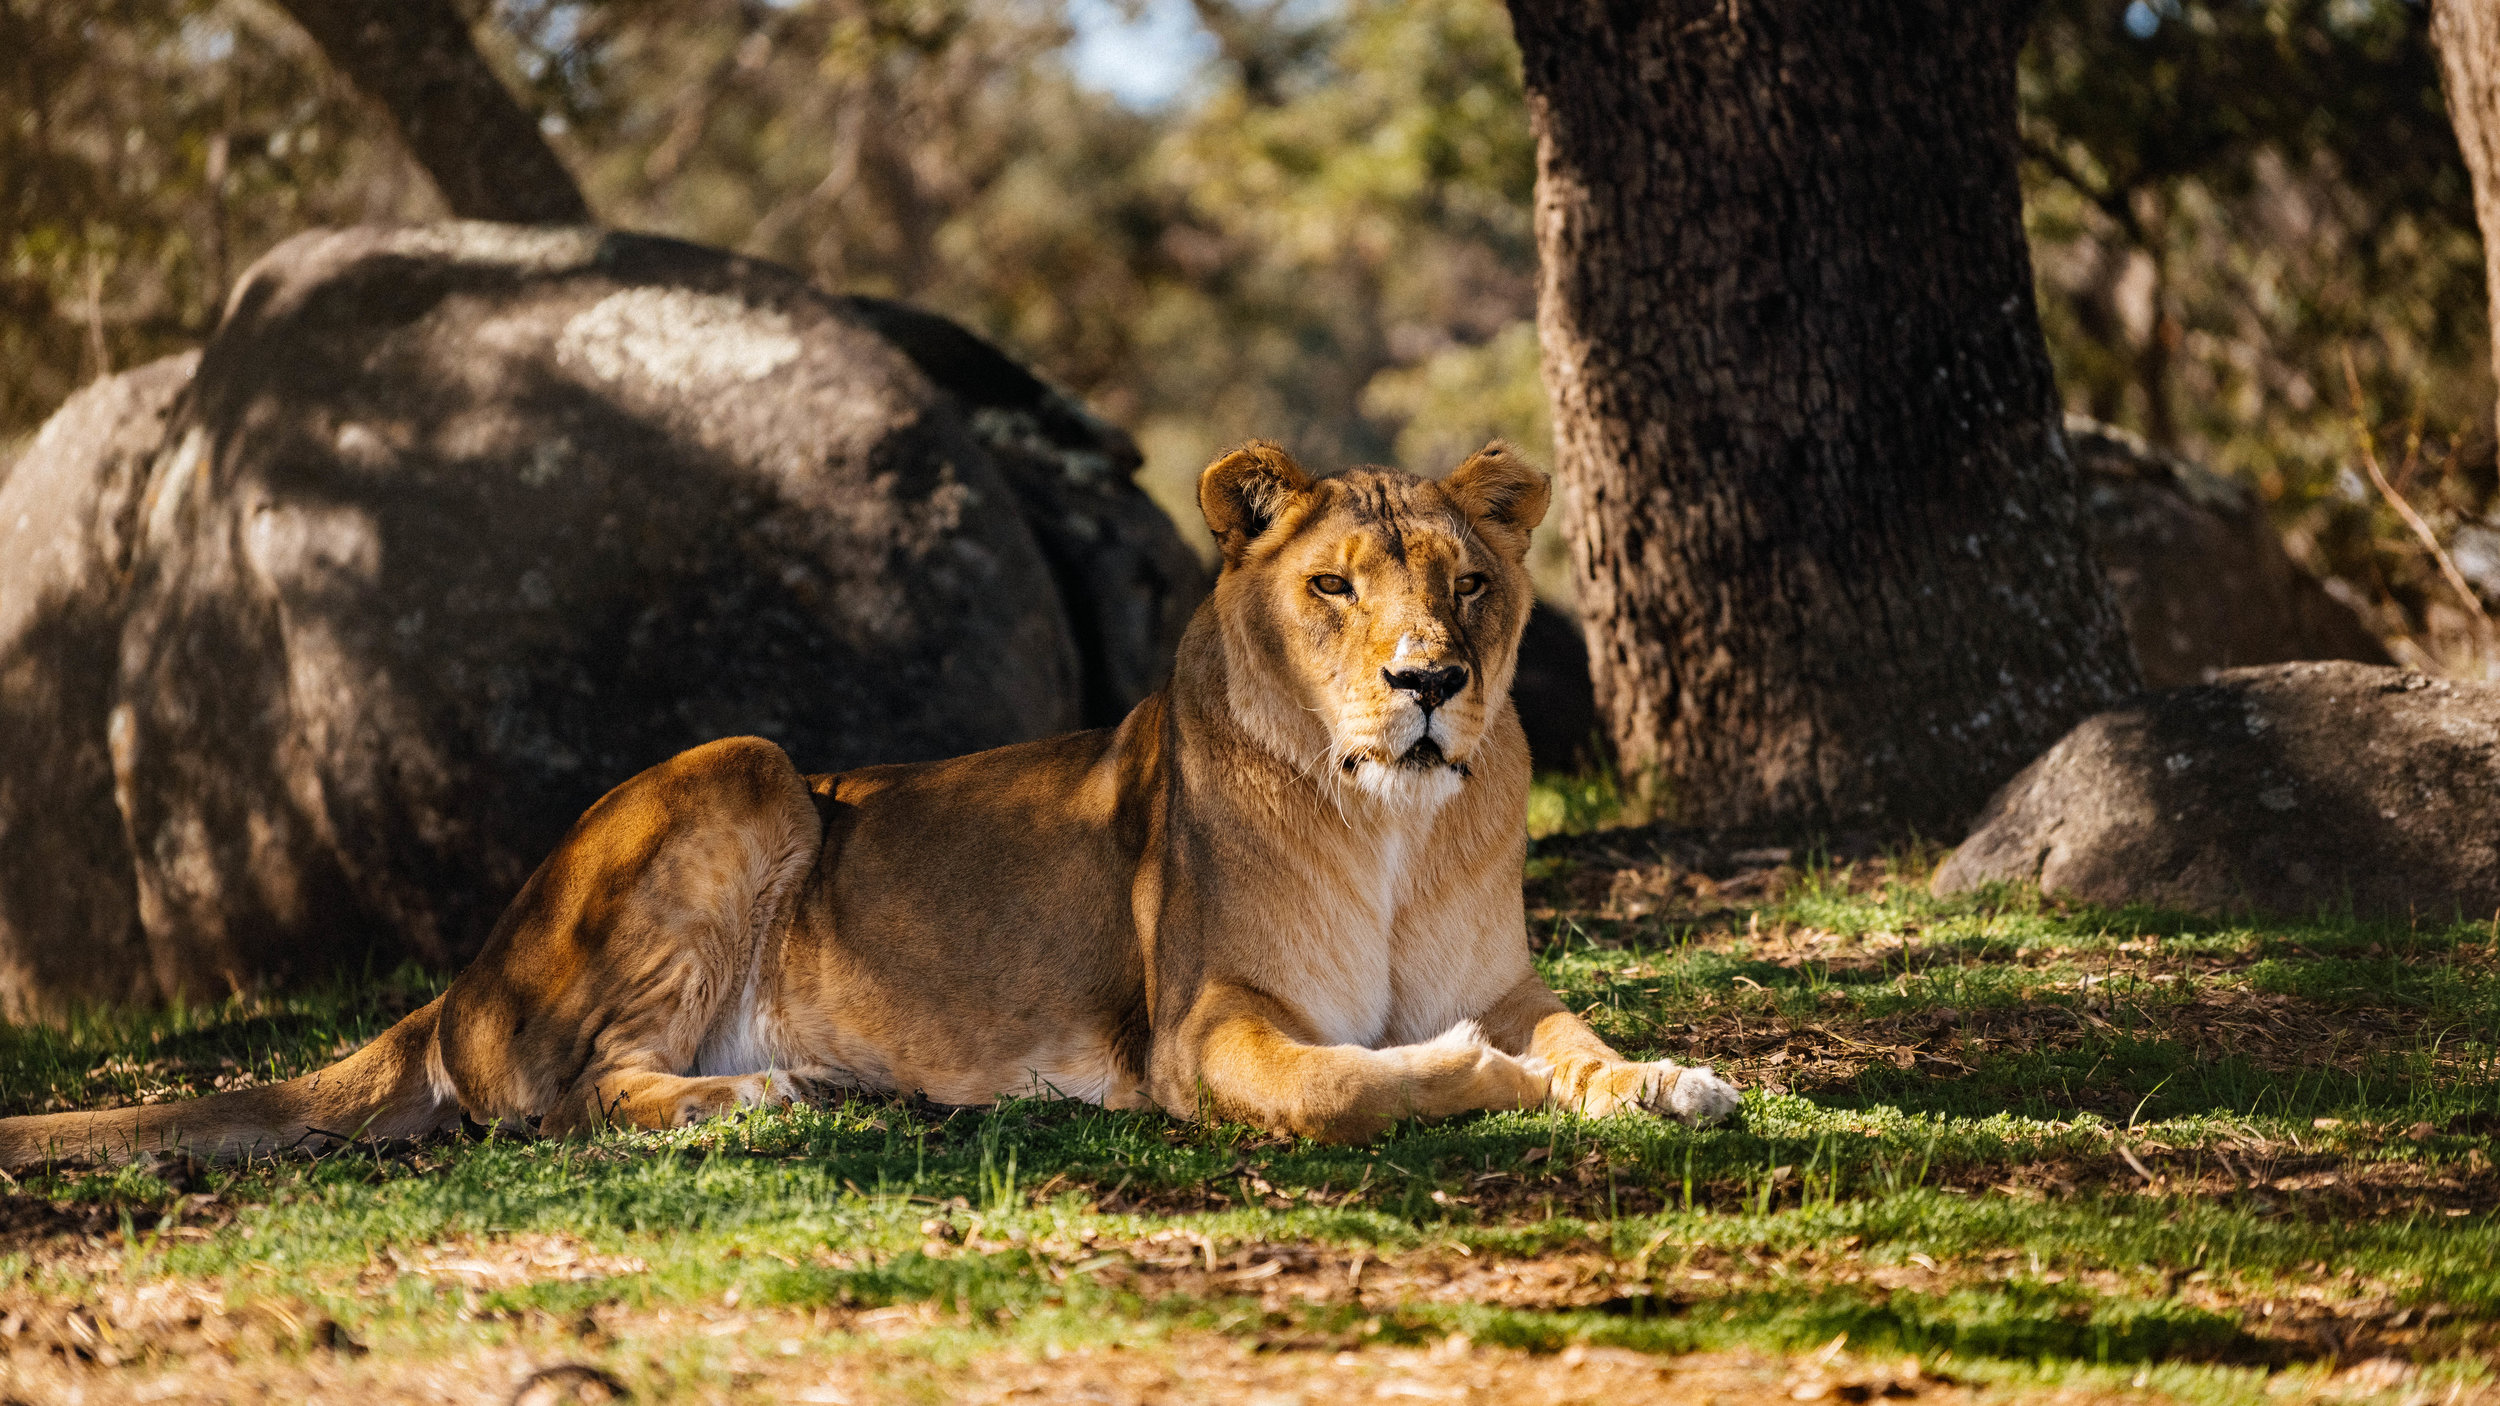 LIONS TIGERS & BEARS - Lions Tigers & Bears is dedicated to providing a safe haven to abused and abandoned exotic animals while inspiring an educational forum to end the exotic animal trade.